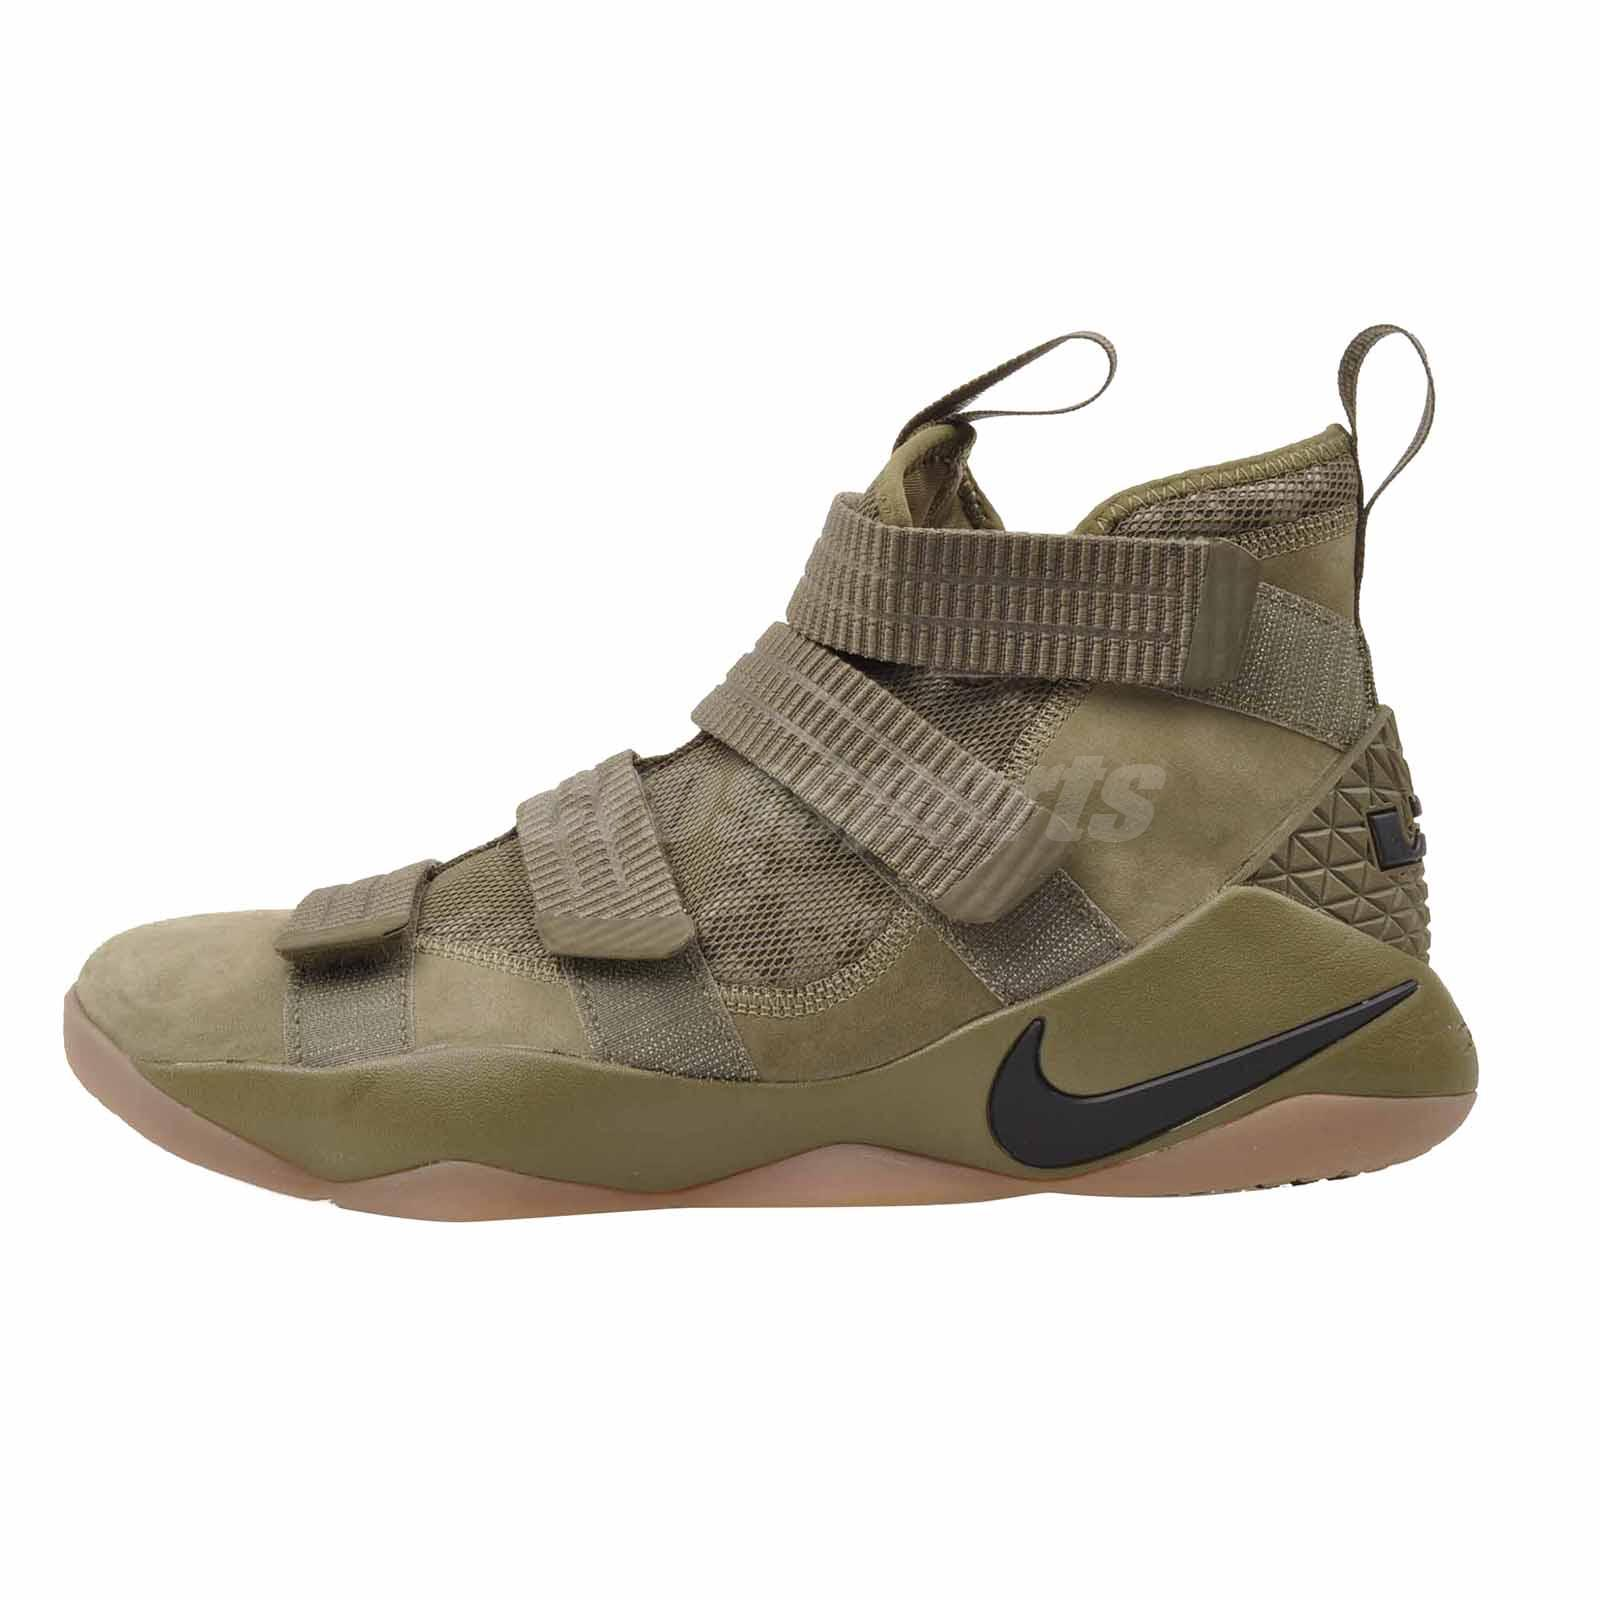 1db002bb9f105 Details about Nike Lebron Soldier XI SFG Basketball 9 Mens Shoes Olive  Black 897646-200